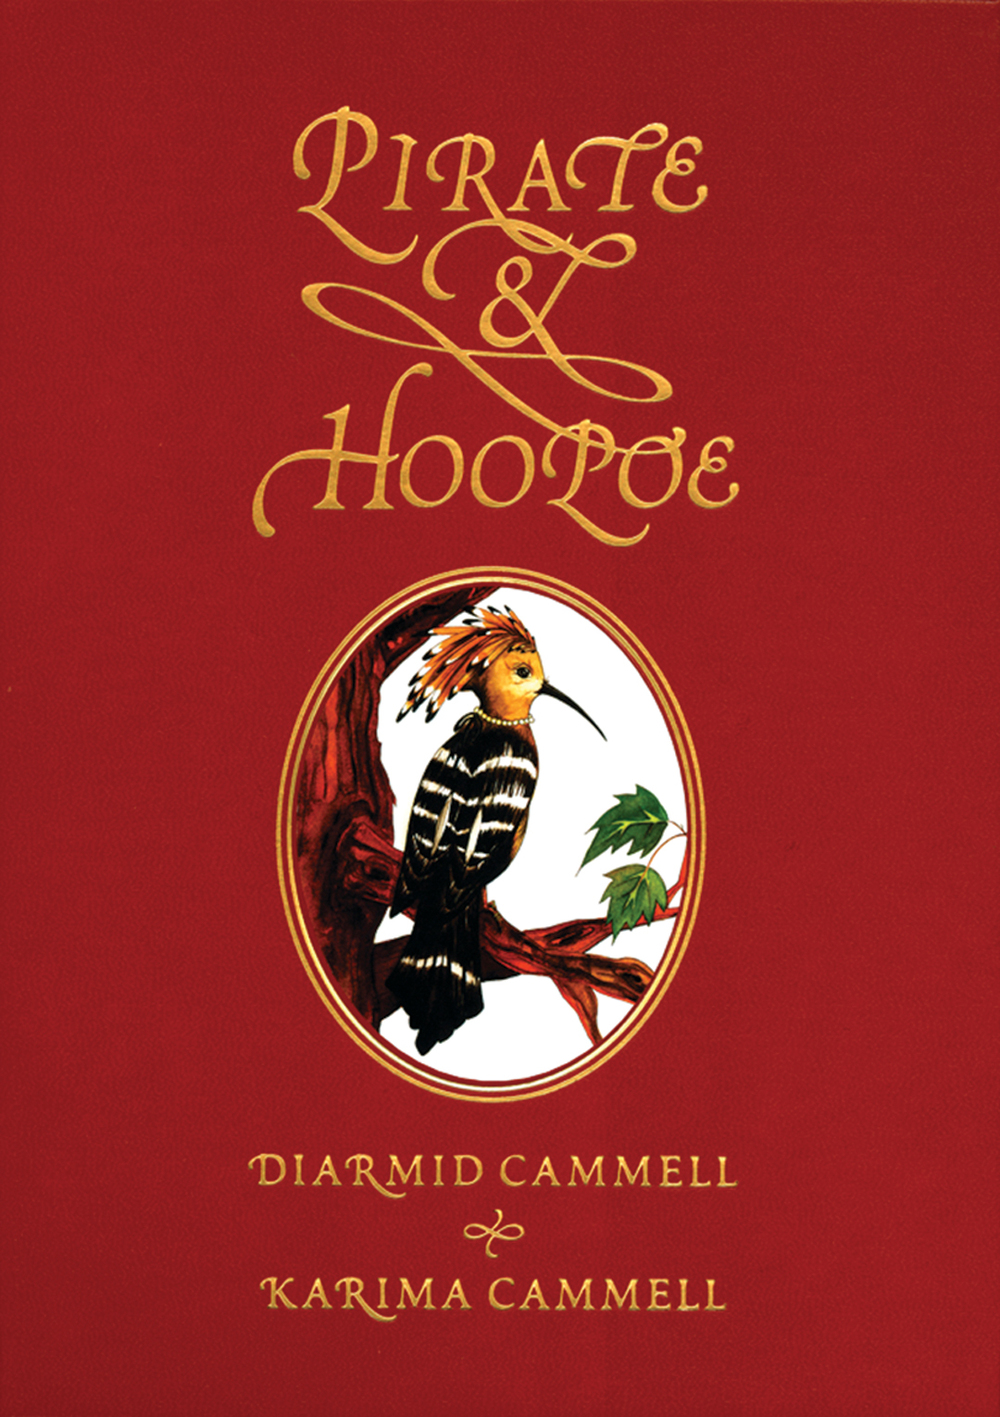 Pirate_and_Hoopoe_cover.jpg